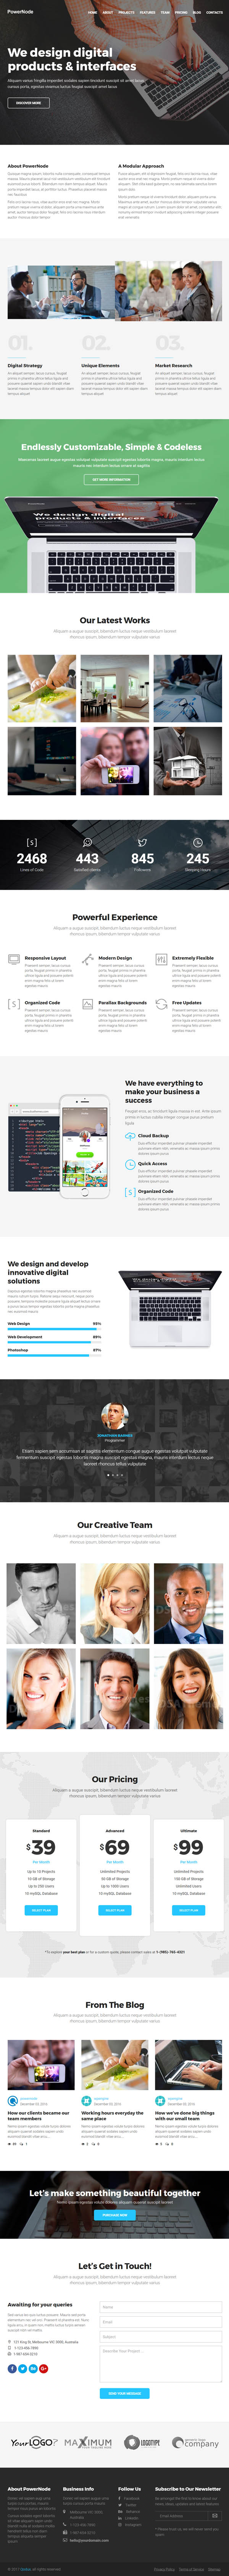 PowerNode : Multi-Purpose Landing Page WordPress Theme